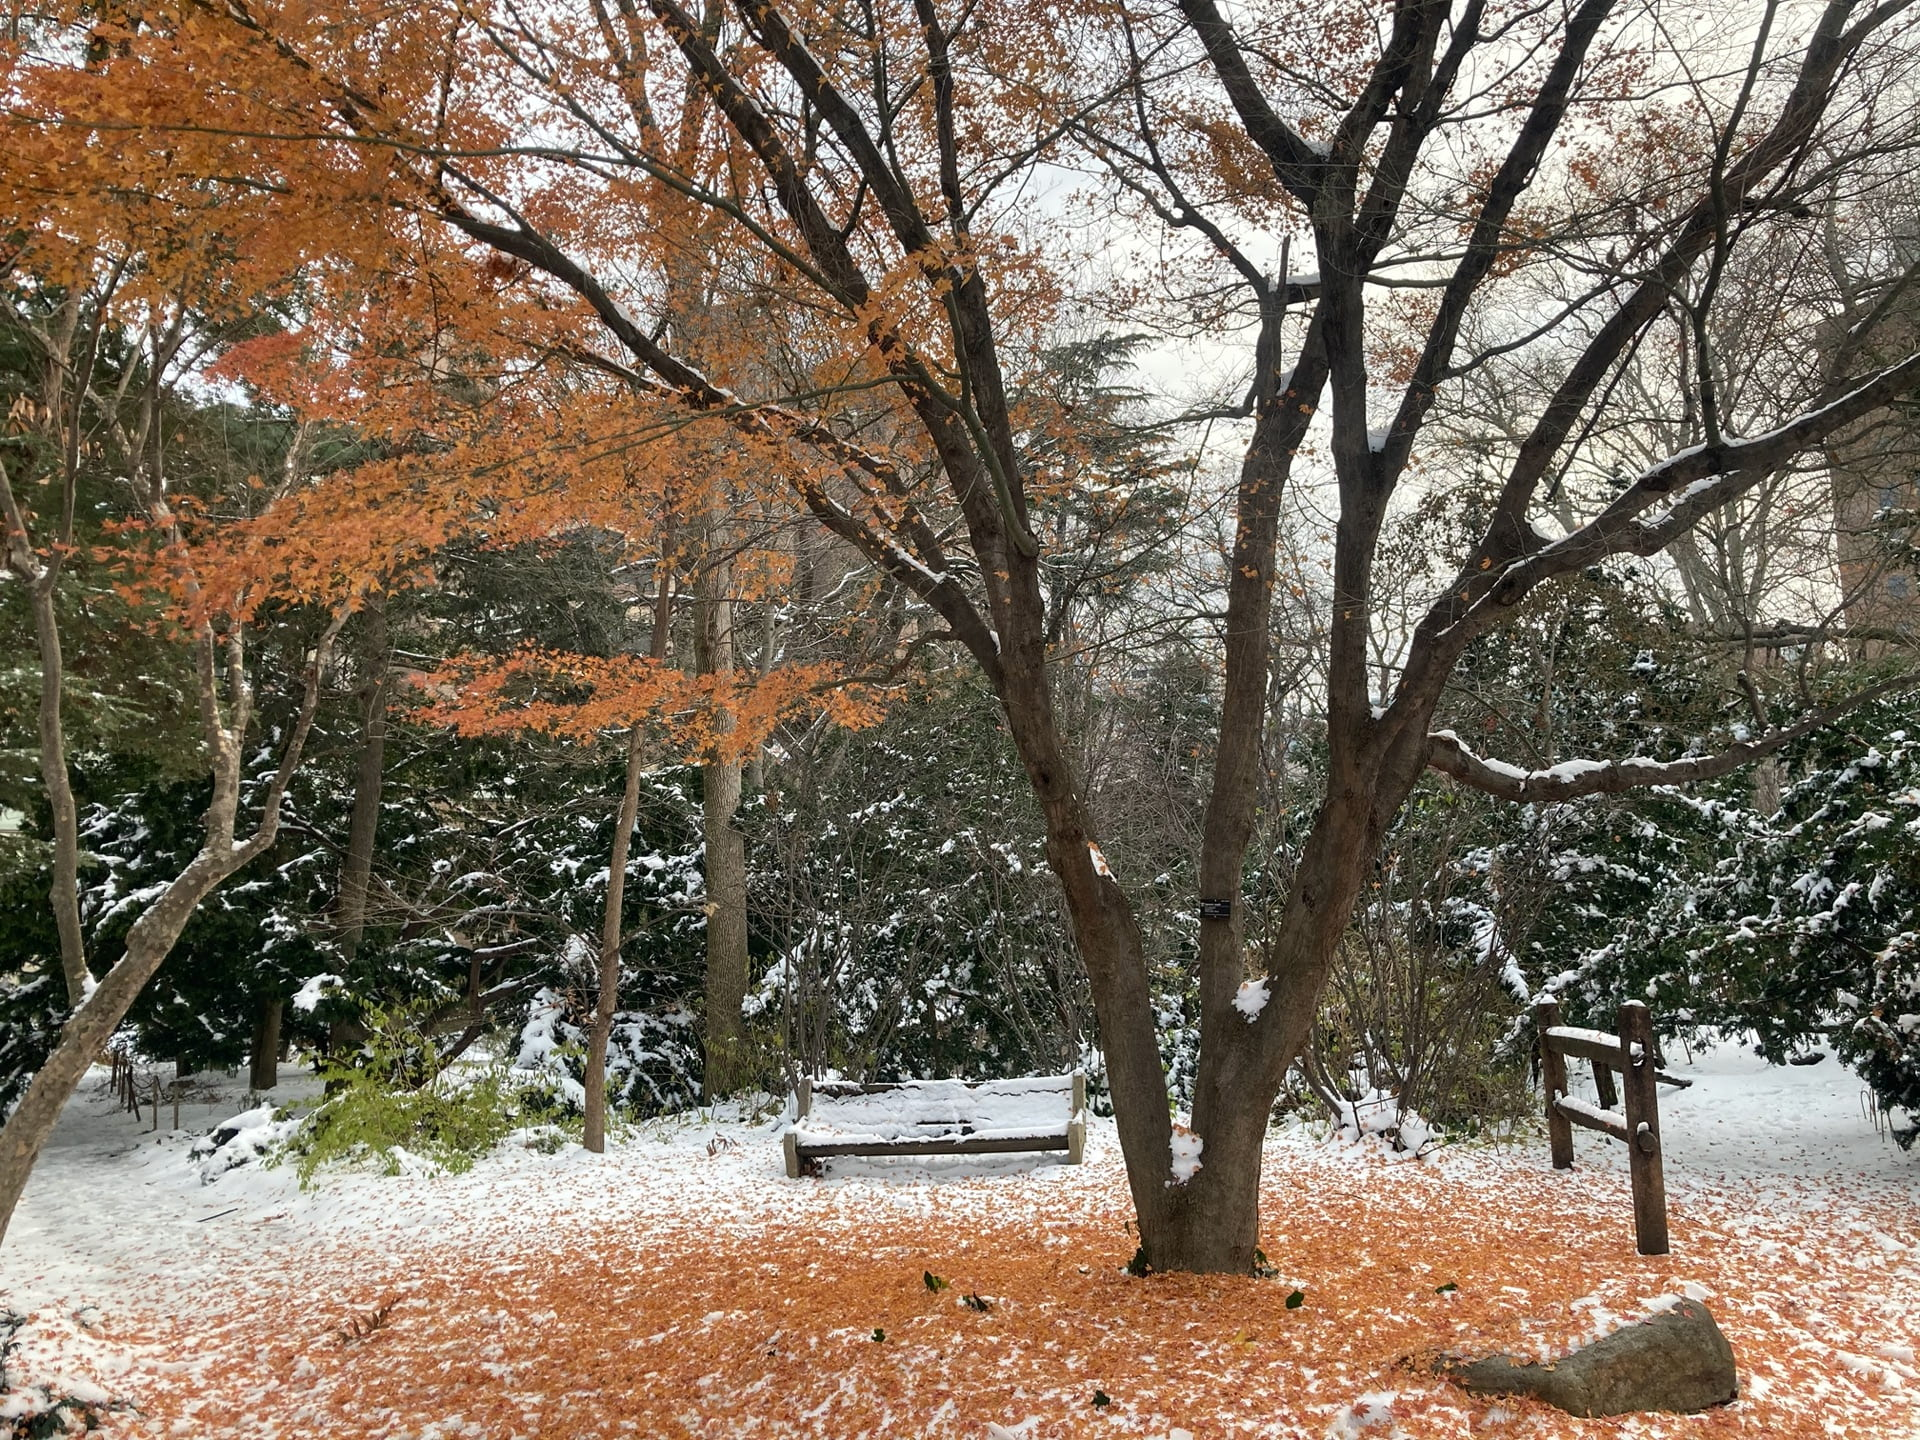 The fallen leaves of Acer palmatum decorate the snow with a perfect orange circle.